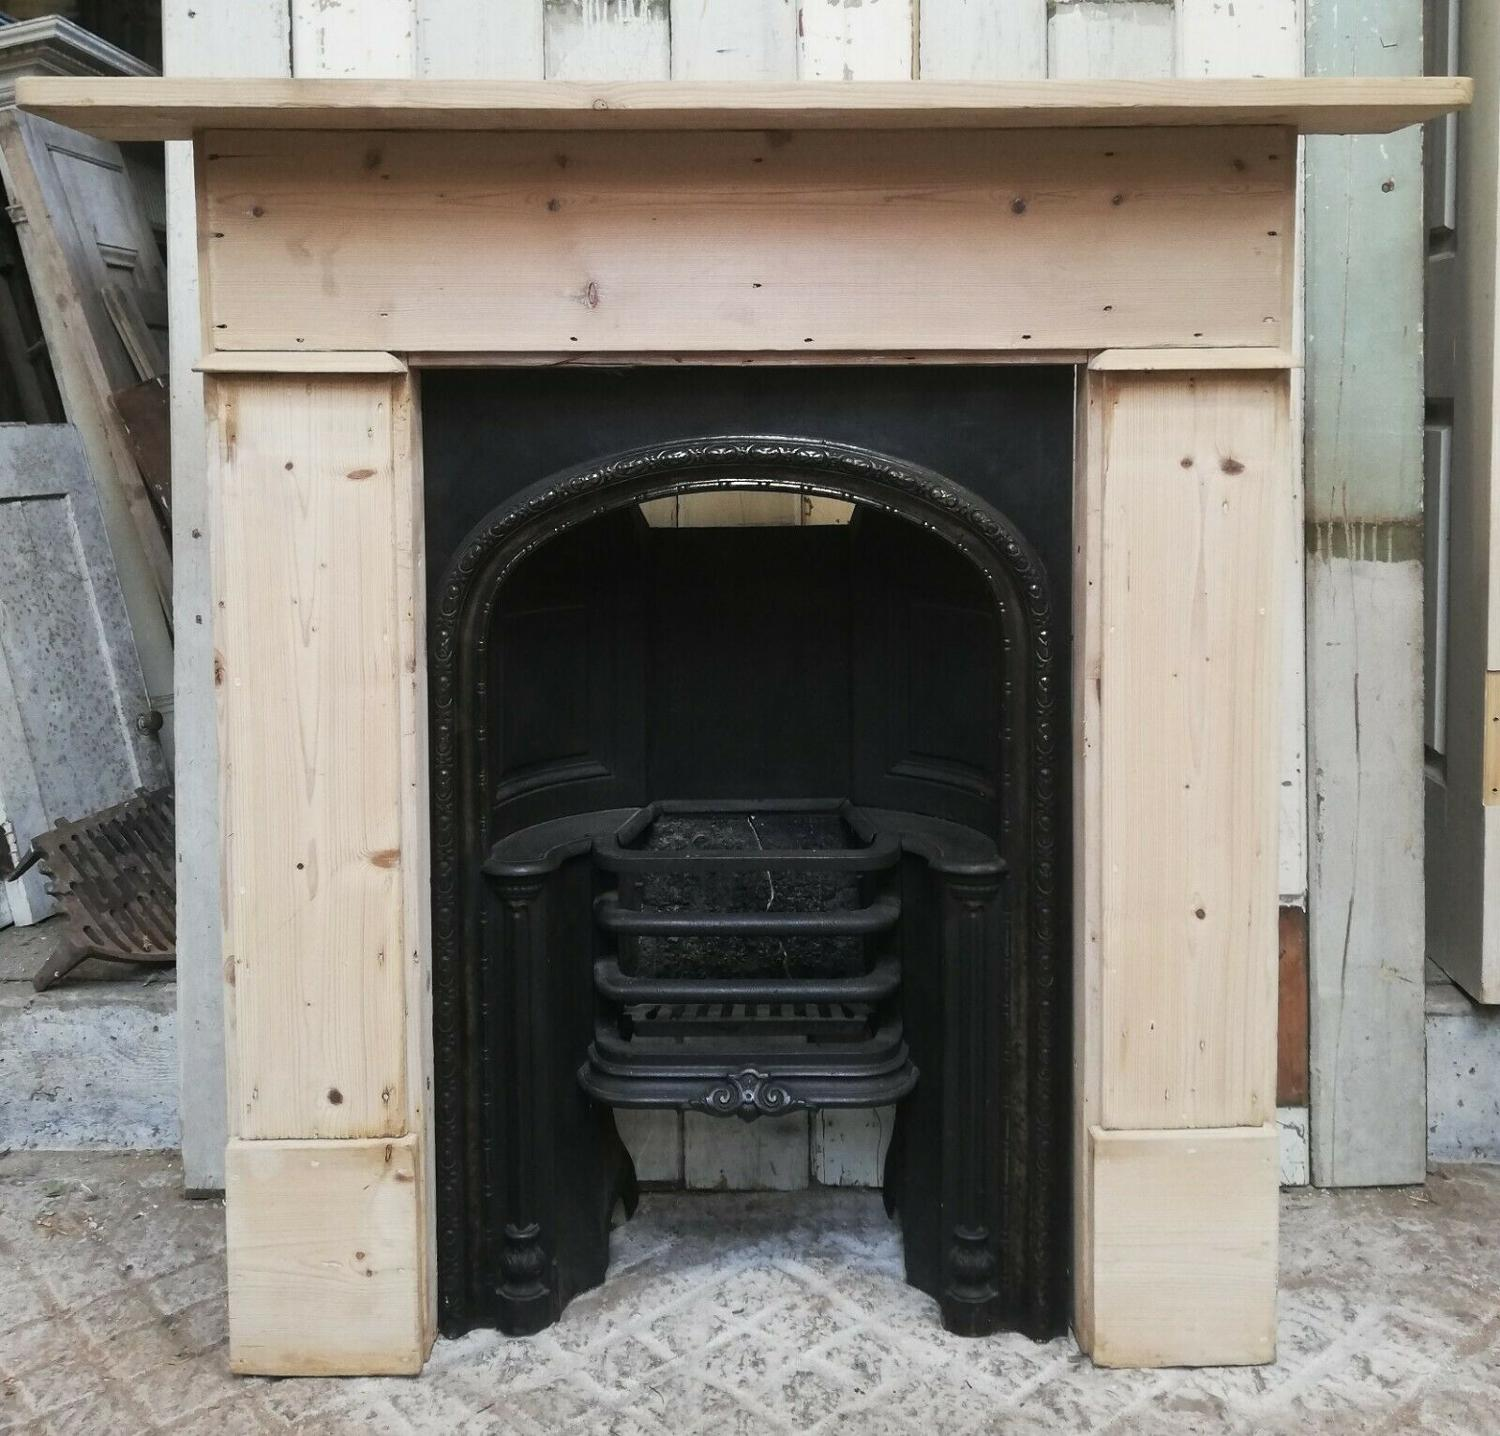 FS0068 A GEORGIAN CAST IRON HOBGRATE INSERT AND PINE FIRE SURROUND